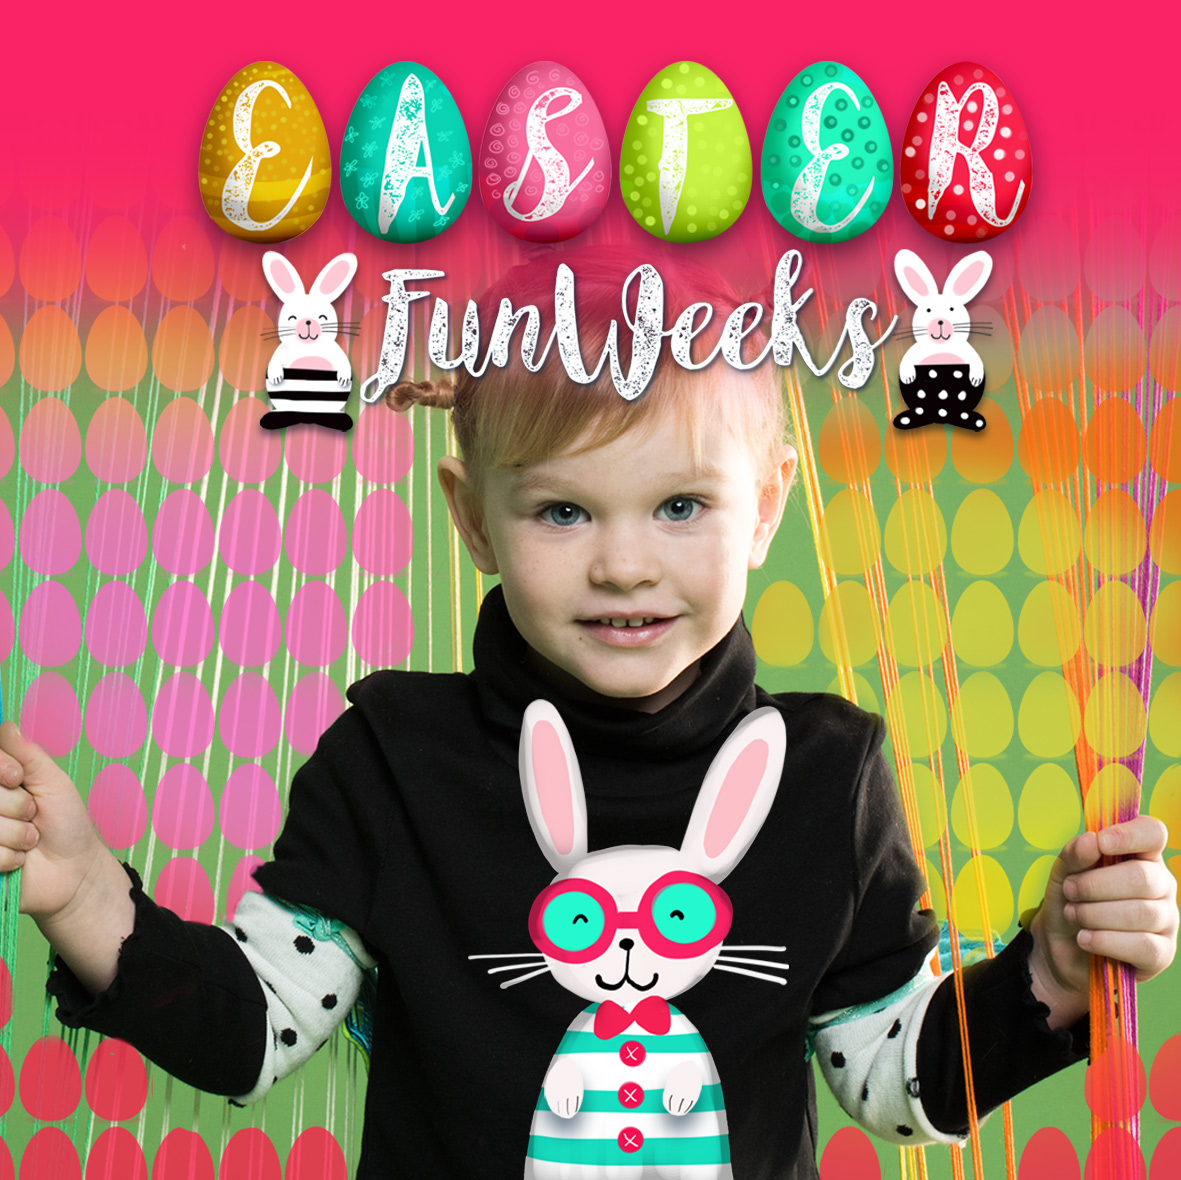 EASTER FUN WEEKS